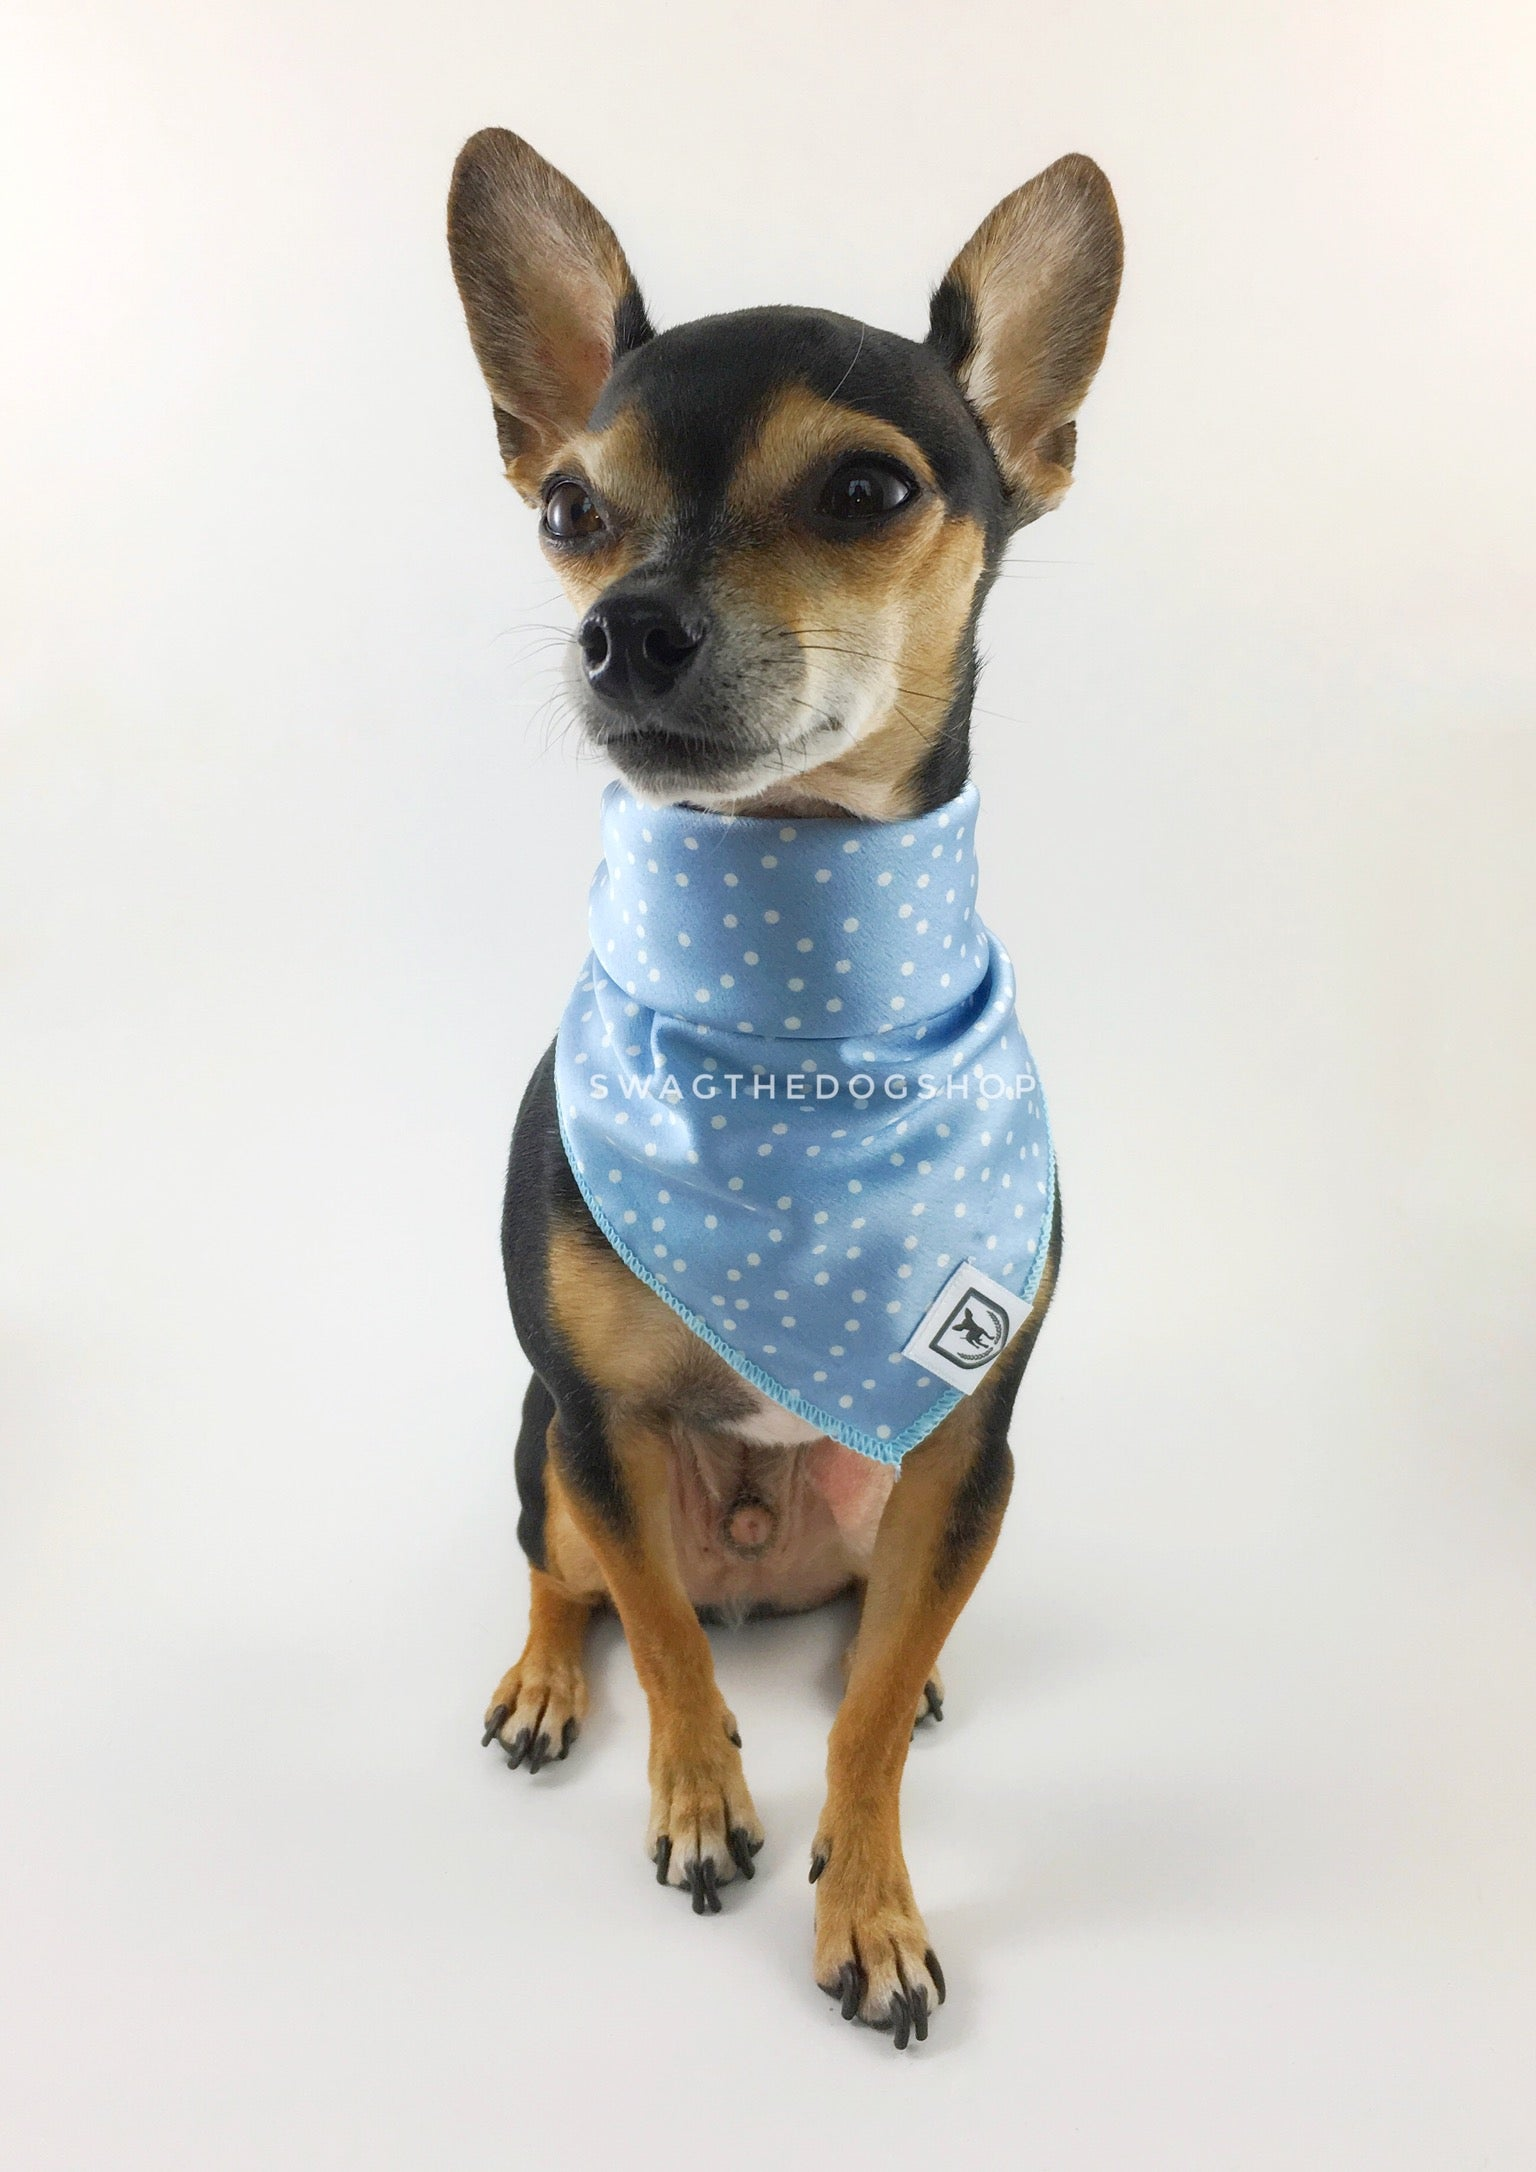 Polka Itty Bitty Powder Blue Swagdana Scarf - Full Frontal View of Cute Chihuahua Wearing Swagdana Scarf as Bandana. Dog Bandana. Dog Scarf.